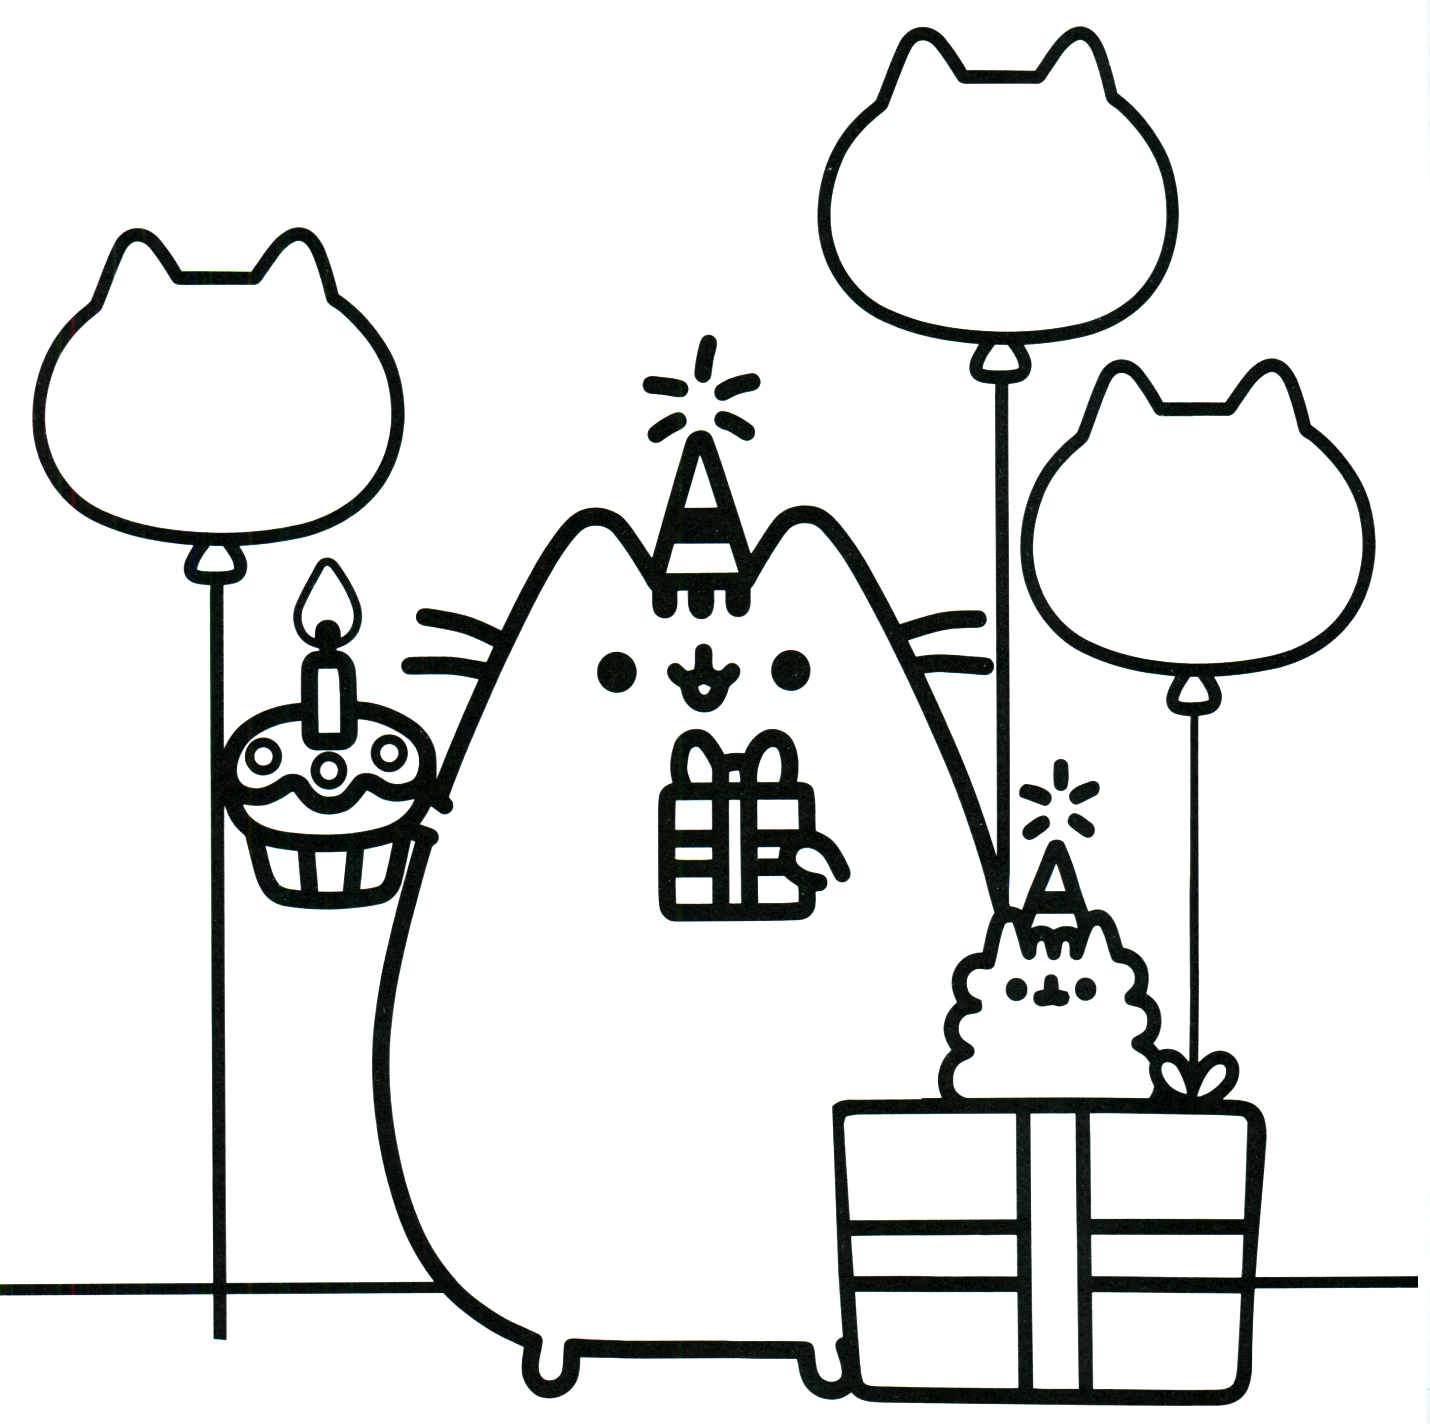 Pusheen Coloring Book Pusheen Pusheen the Cat | Transfers ...